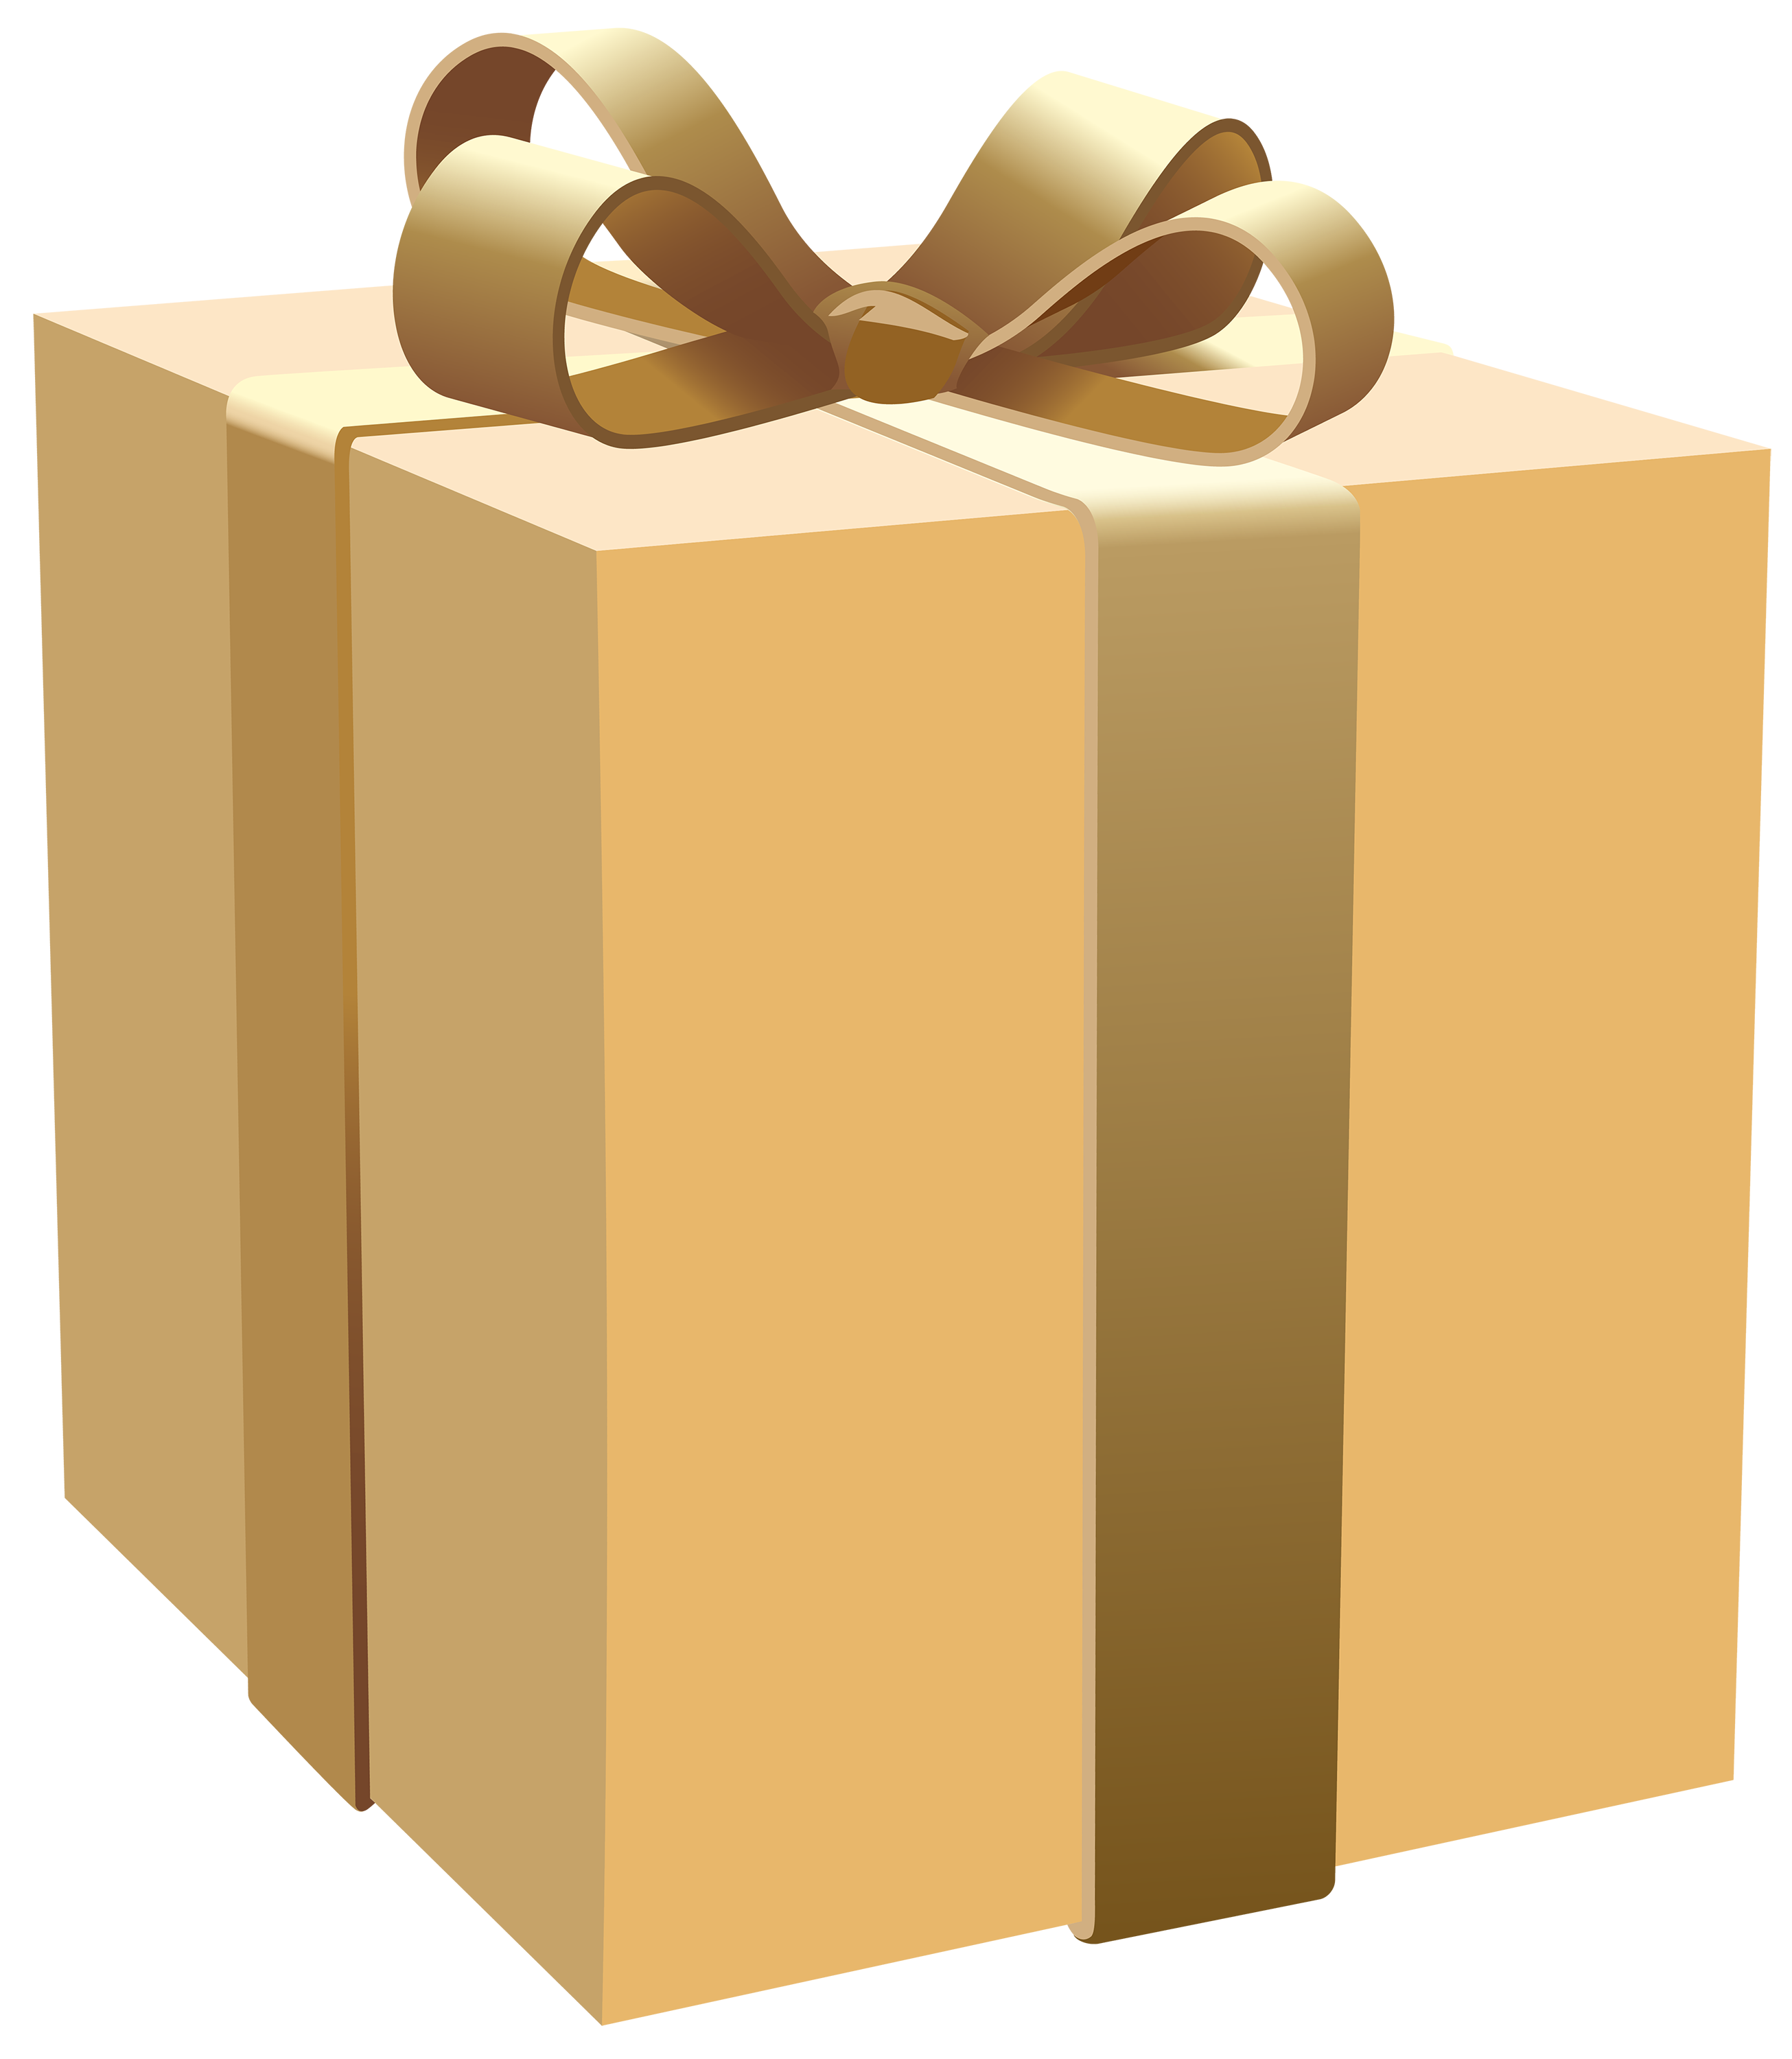 Gift clipart special gift. Cream box png best